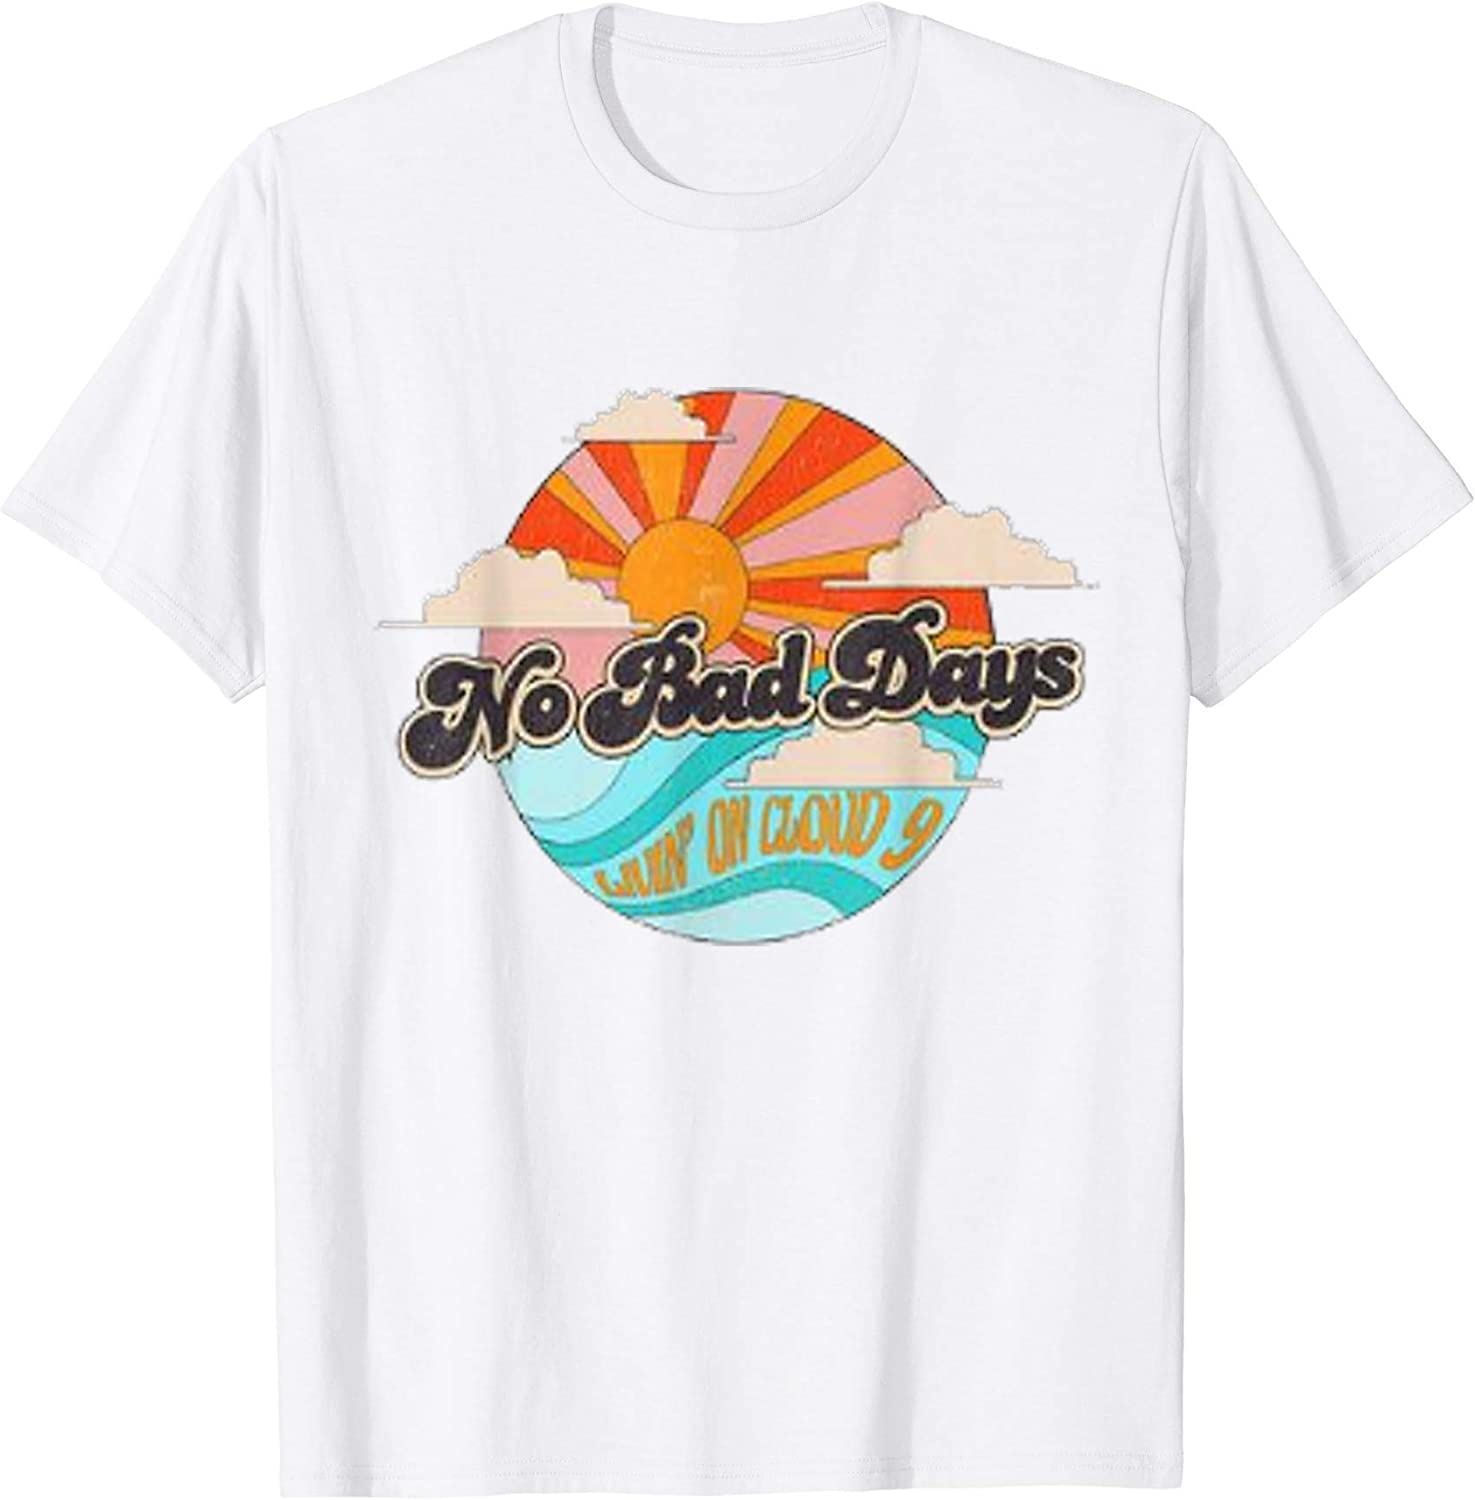 Today Perfect Day To Be Happy Inspirational Girls Youth T-Shirts Tees Tshirts